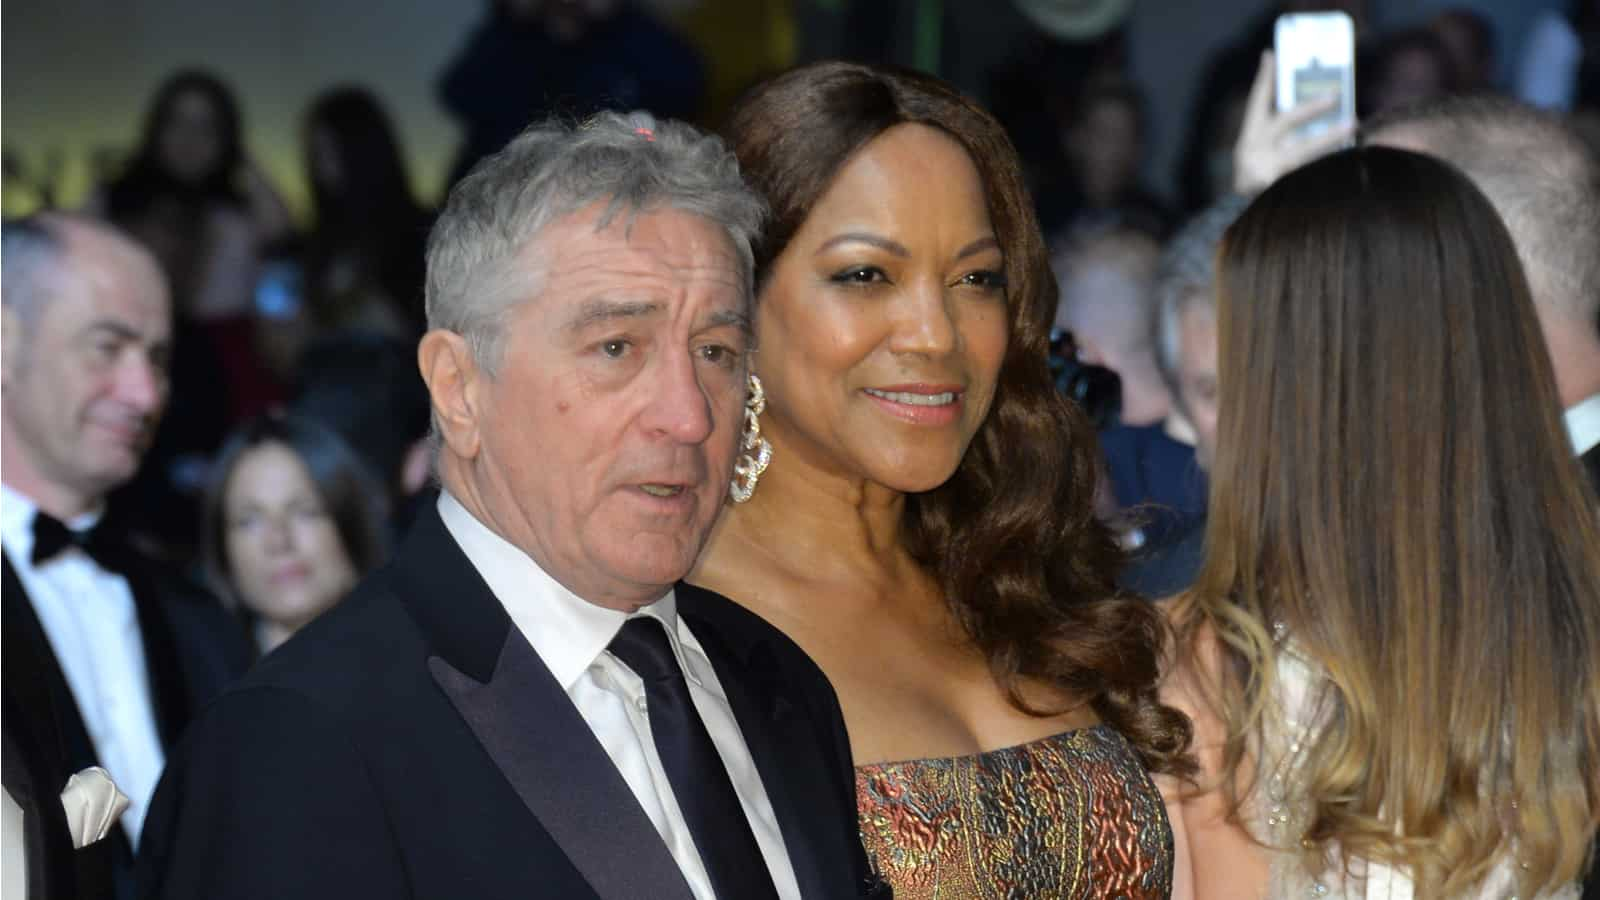 https://www.ebony.com/news/robert-deniro-grace-hightowers-split/